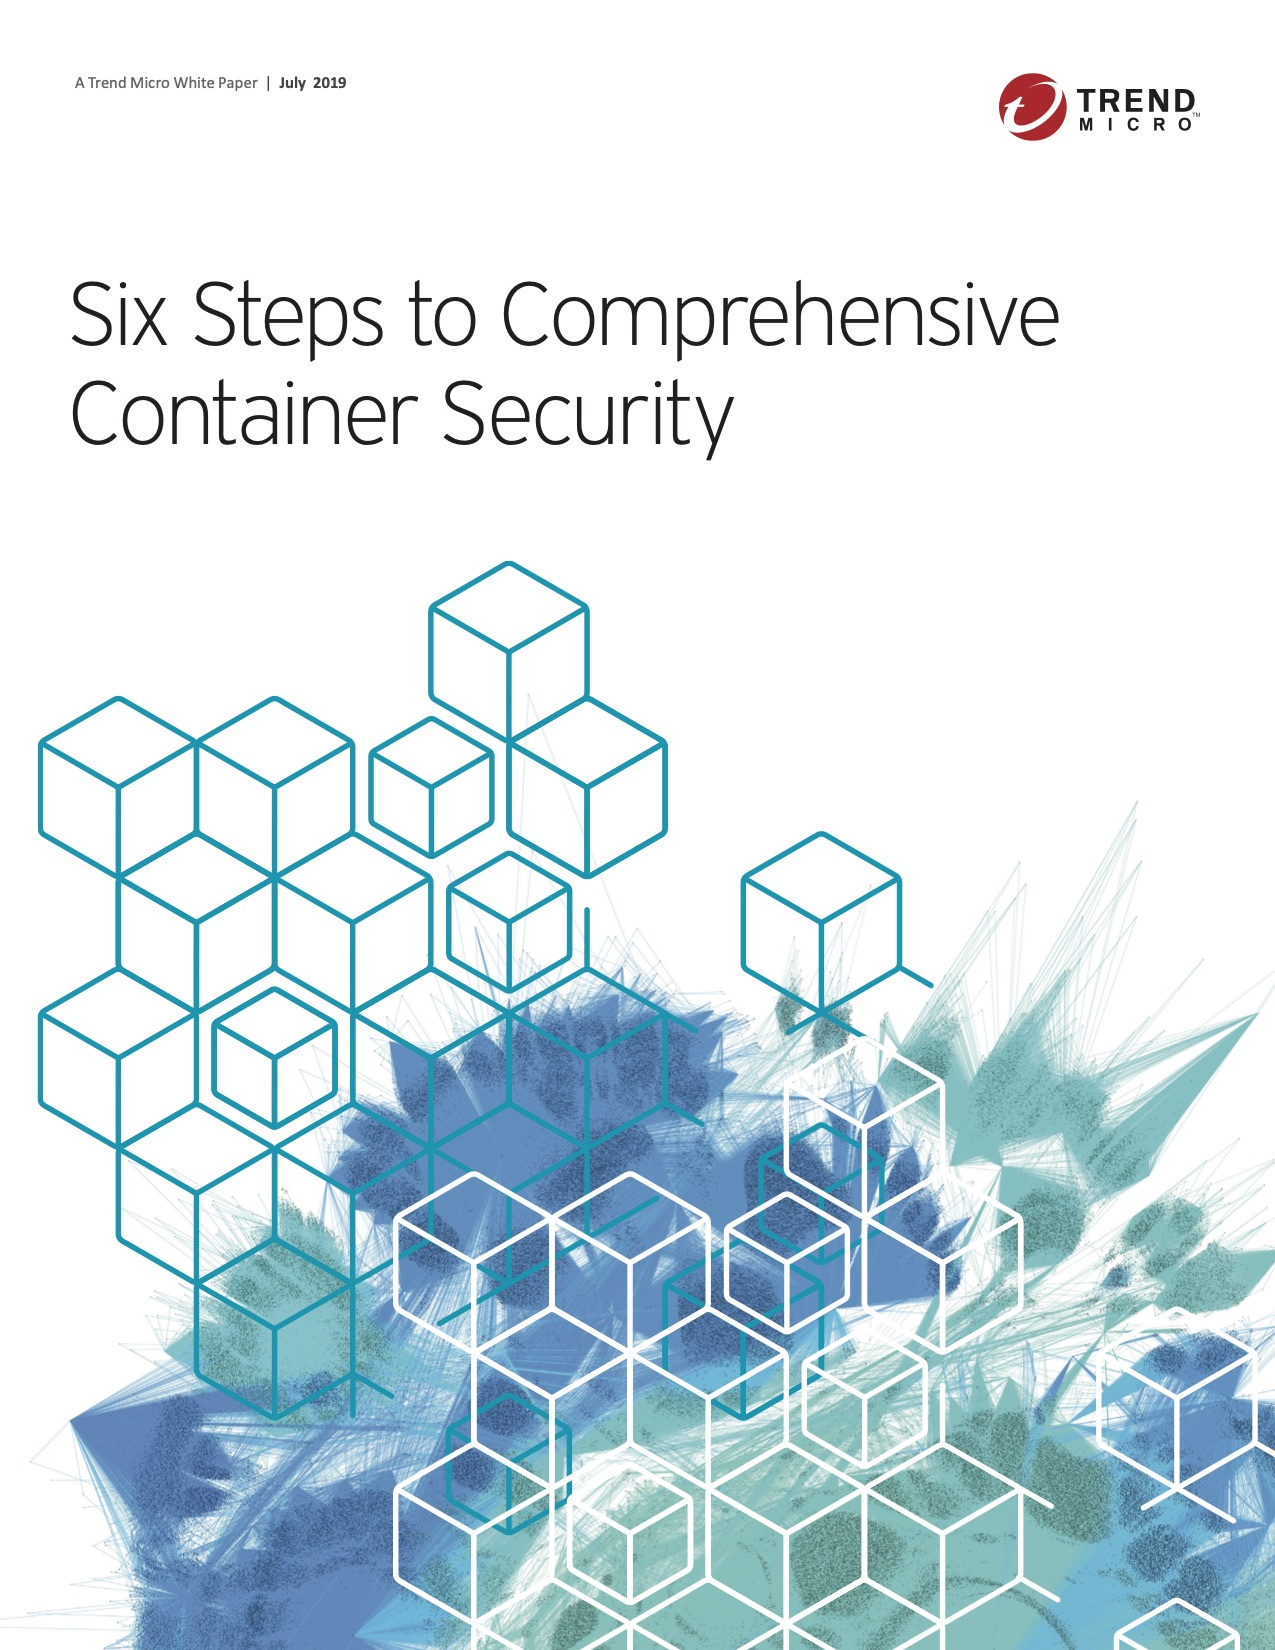 WP01_TM_Six_Steps_to_Container_Security_190723US_web